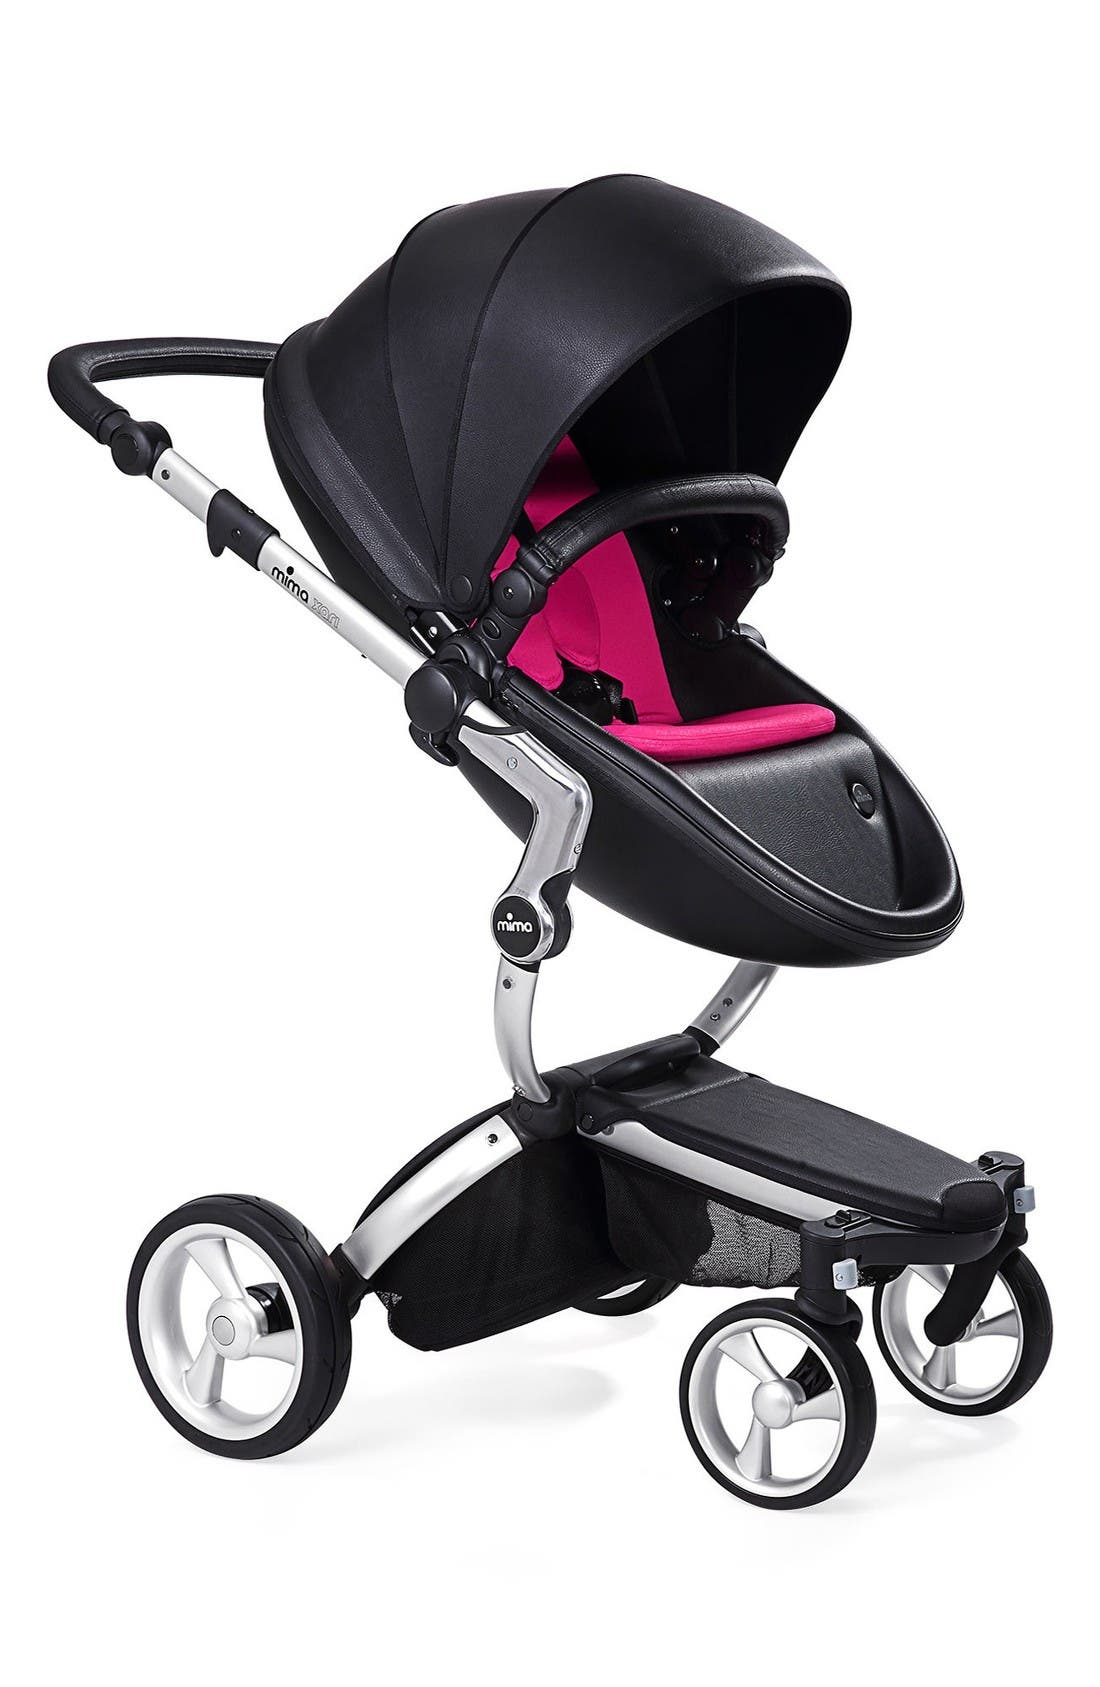 Mima Xari Aluminum Frame Stroller with Reversible Reclining Seat & Carrycot